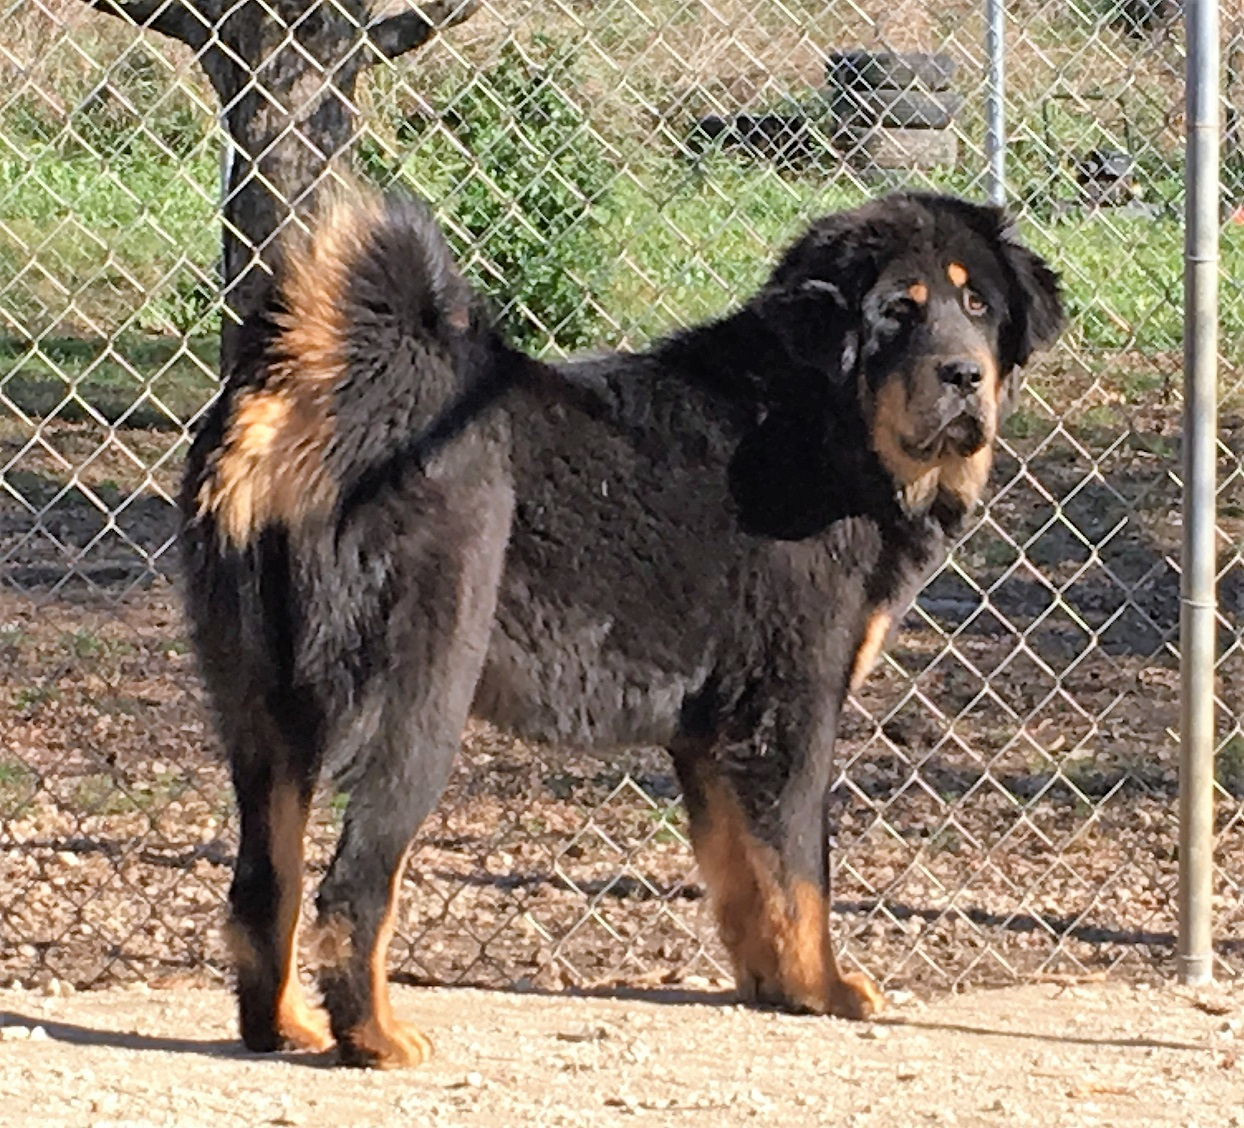 Tonka Girl 11-06-15 $1500 with breeding rights